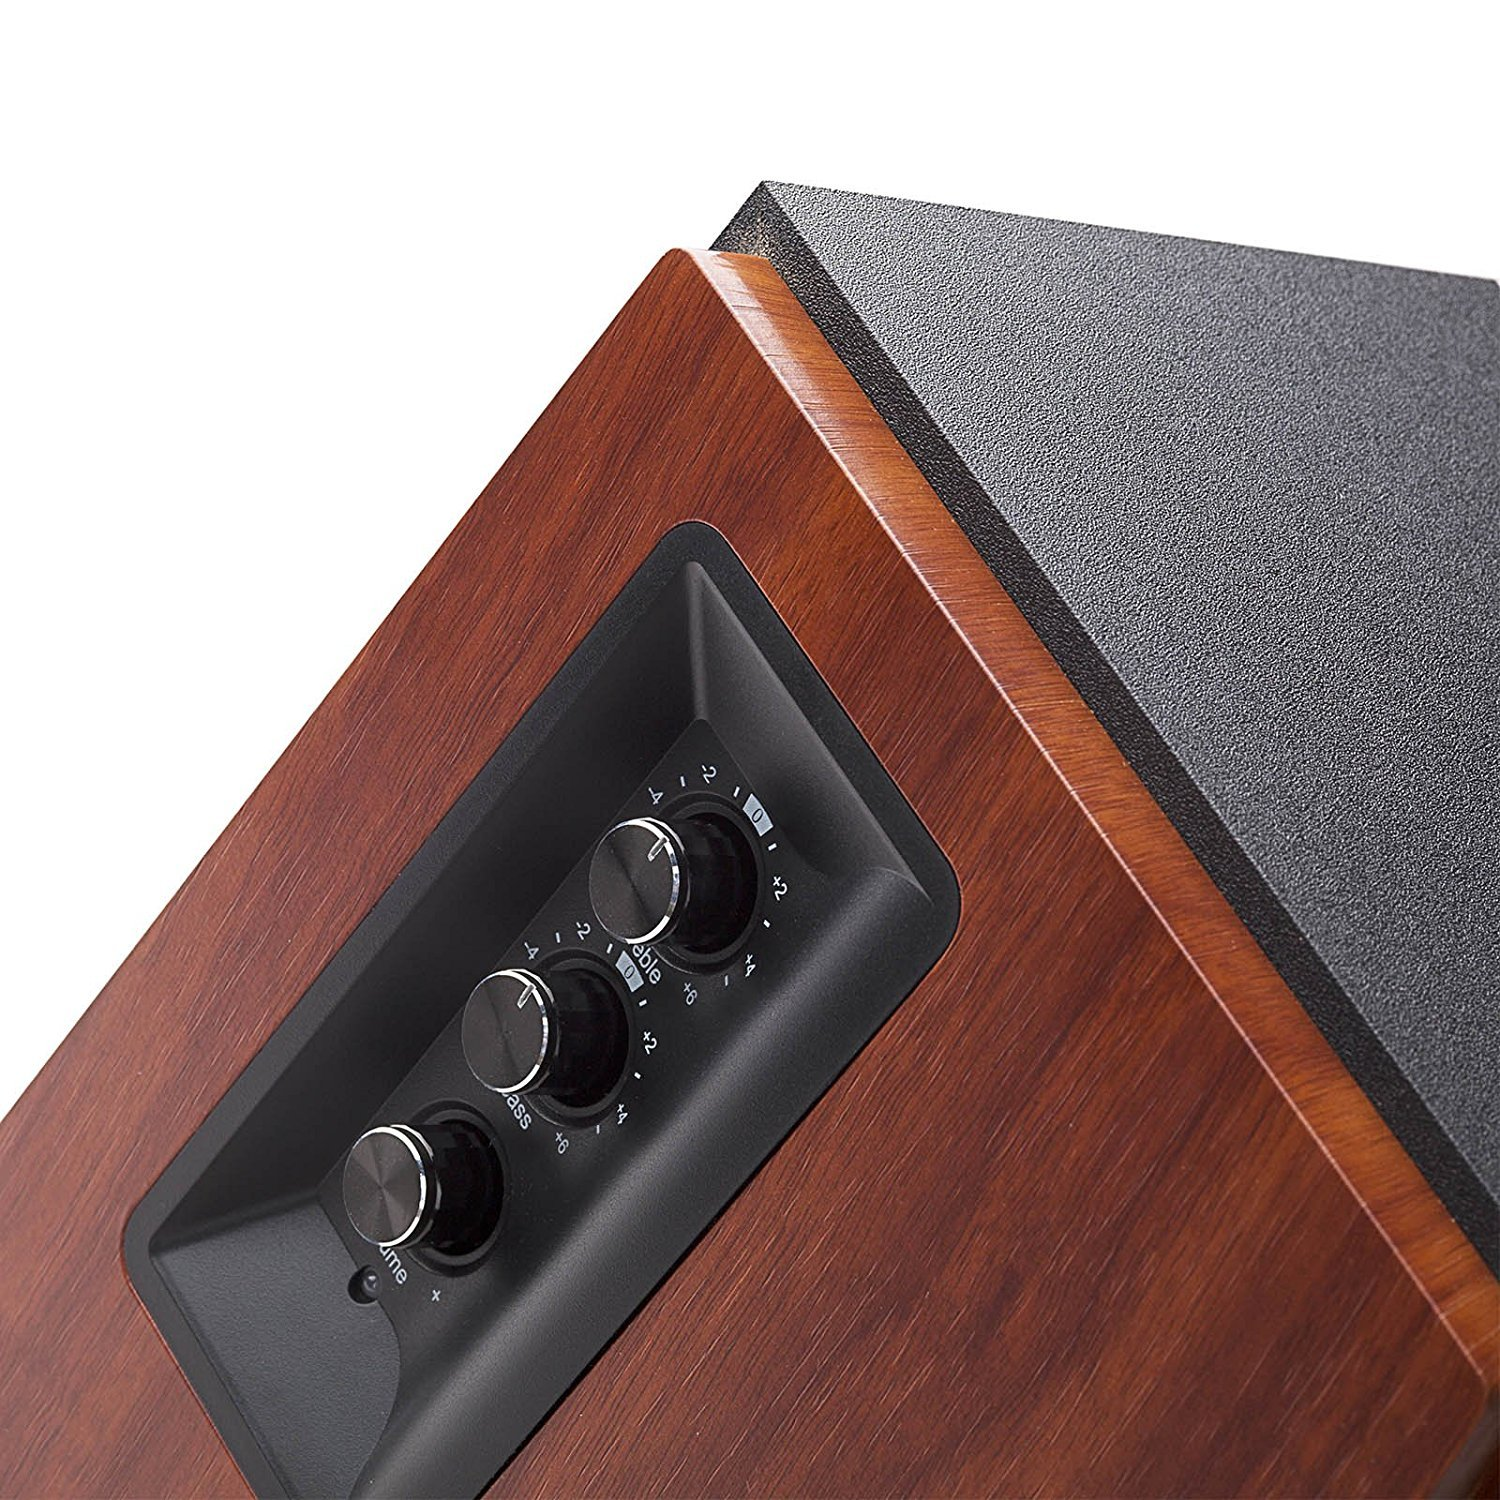 Edifier R1700BT 2.0 Lifestyle Speakers with Bluetooth image